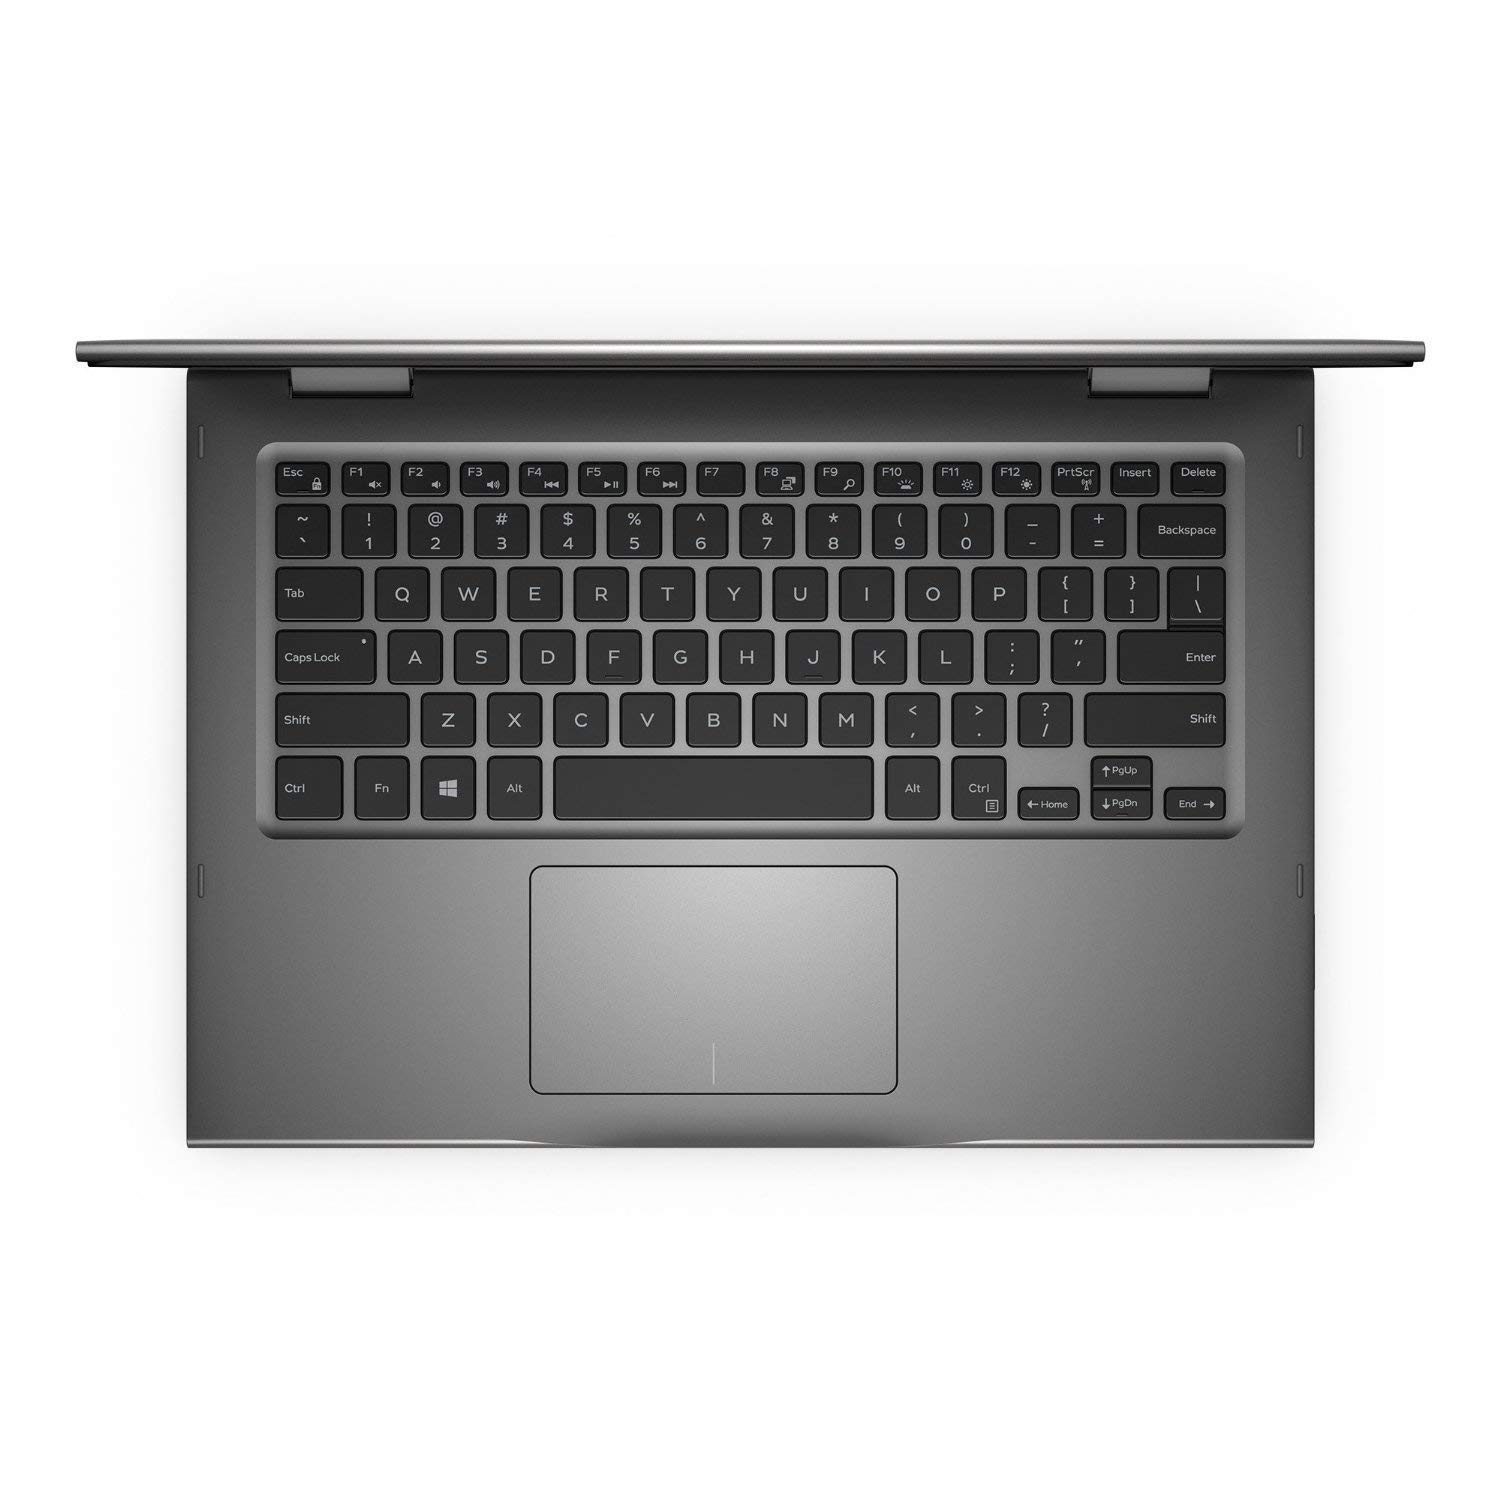 Dell Inspiron 7359 i7-6500U 8GB 256GB